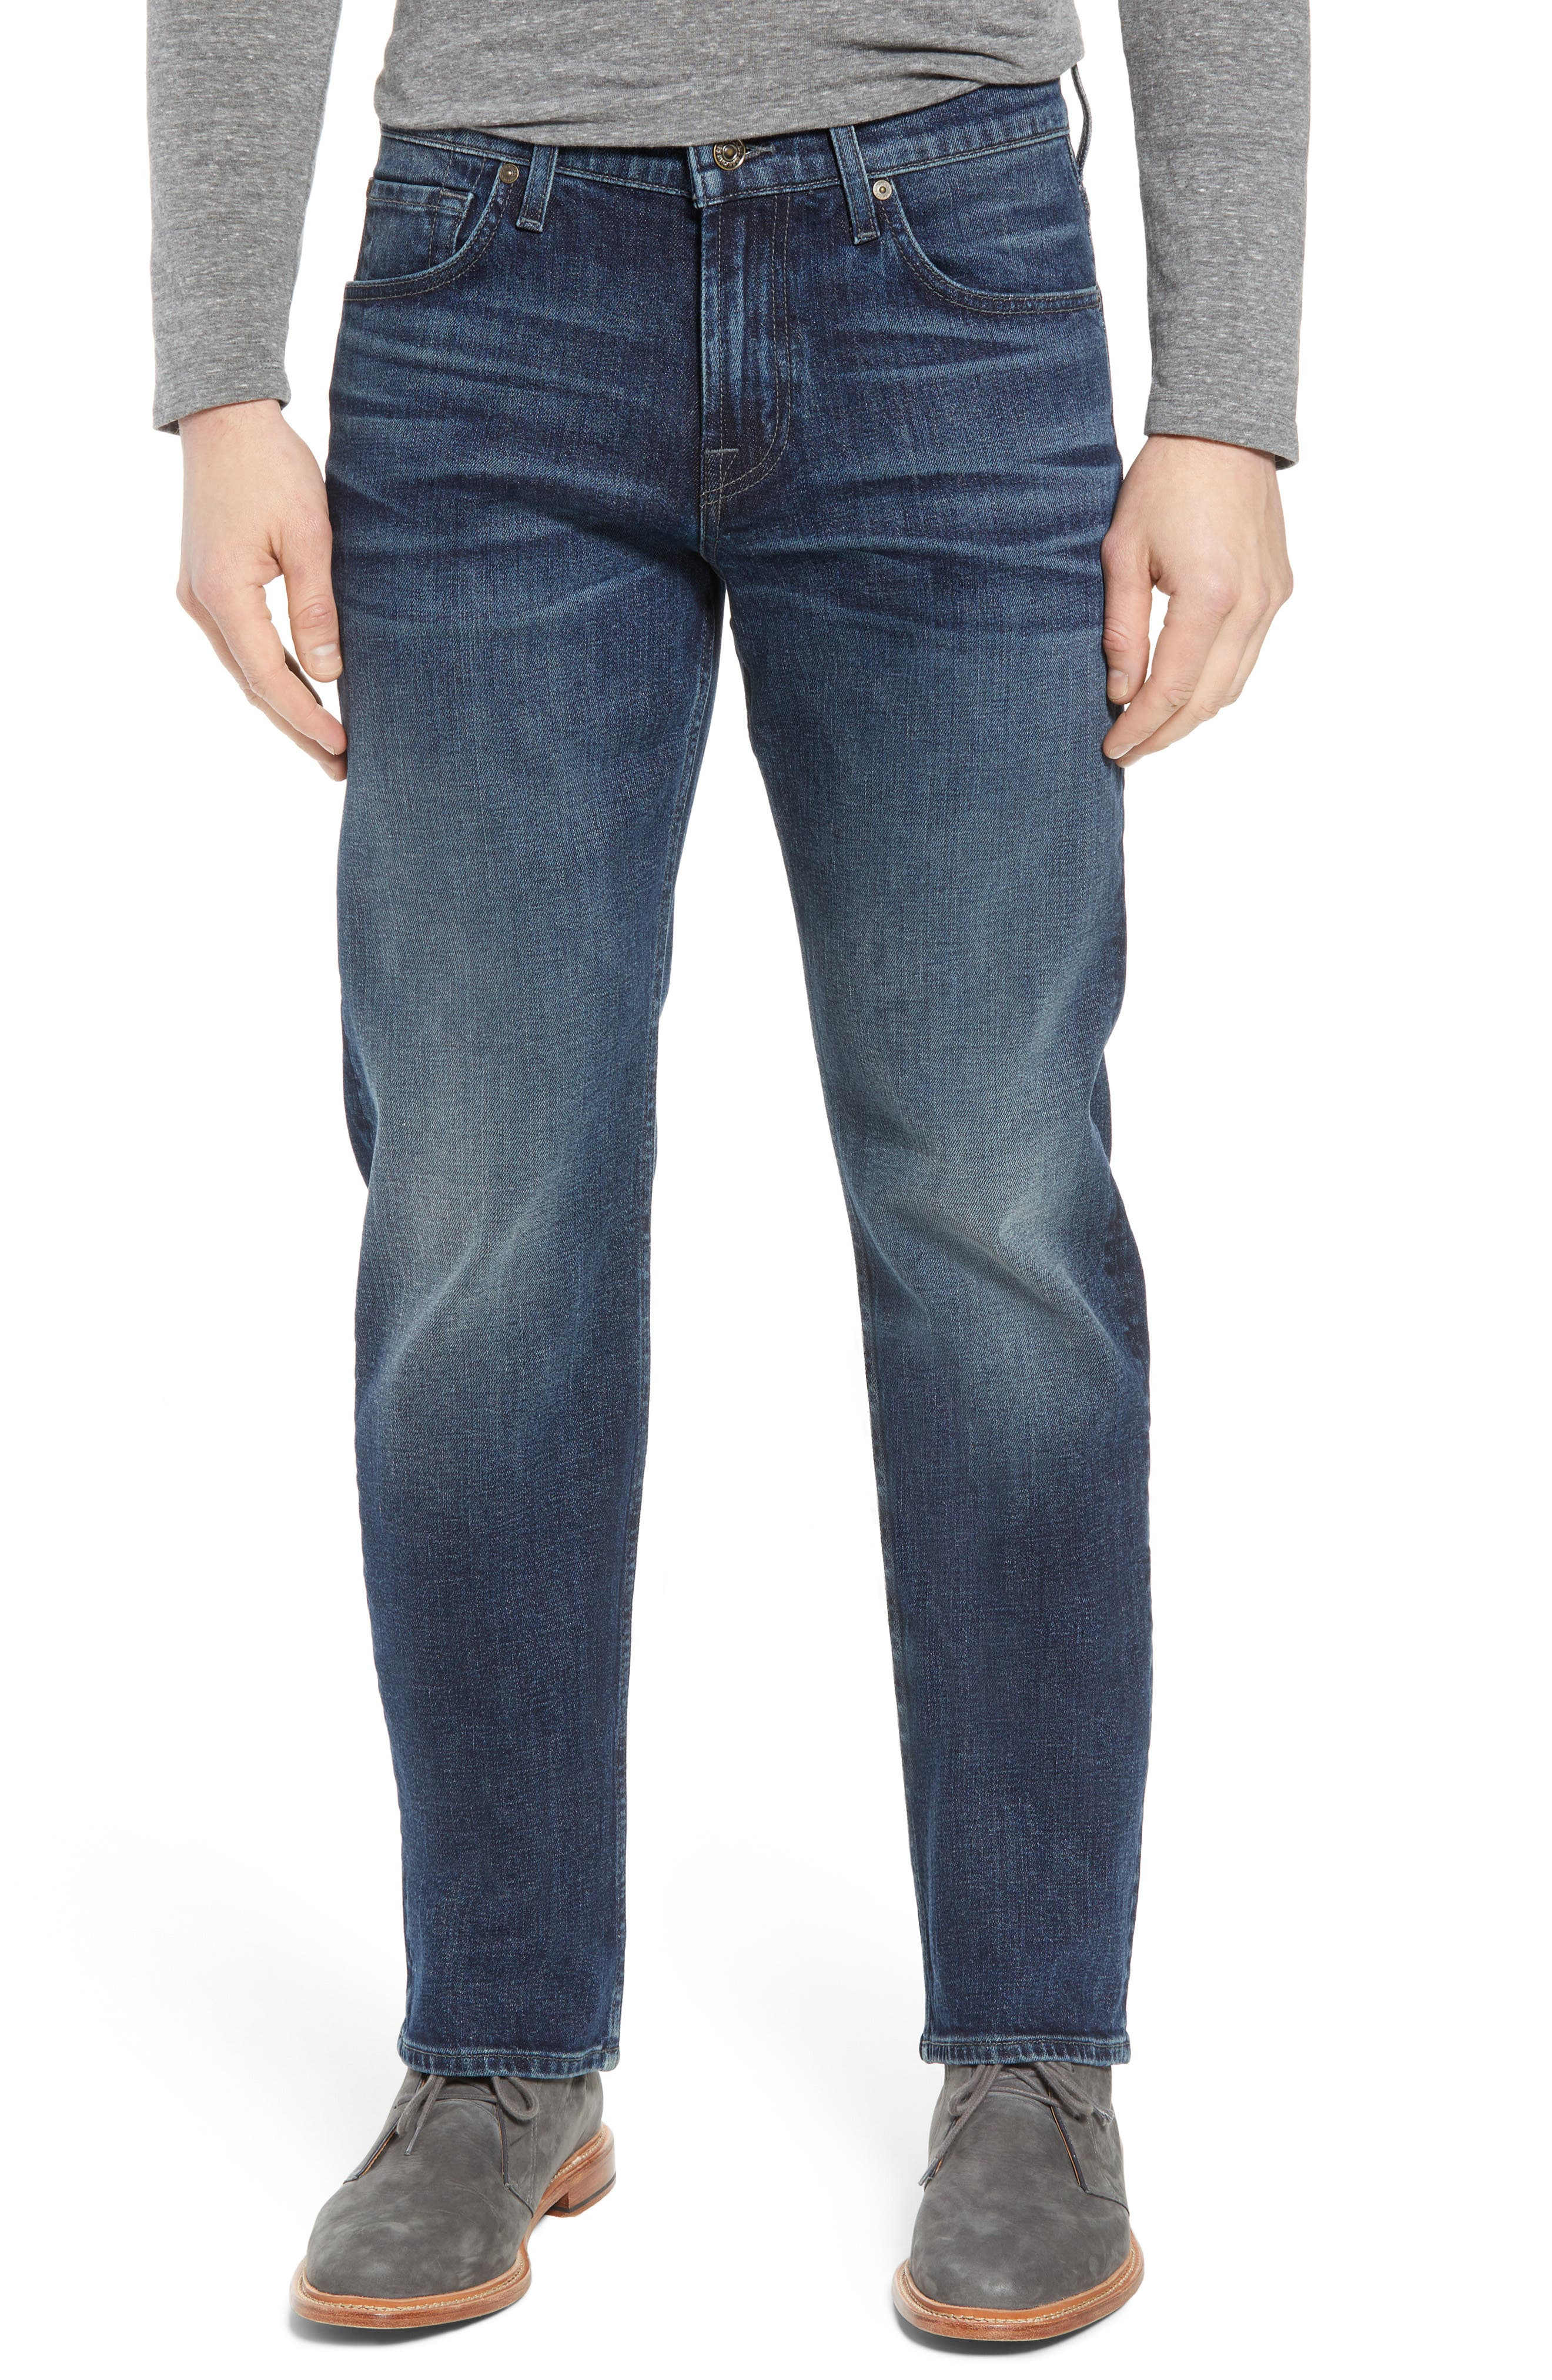 Austyn Relaxed Fit Jeans,                         Main,                         color, Untouchable